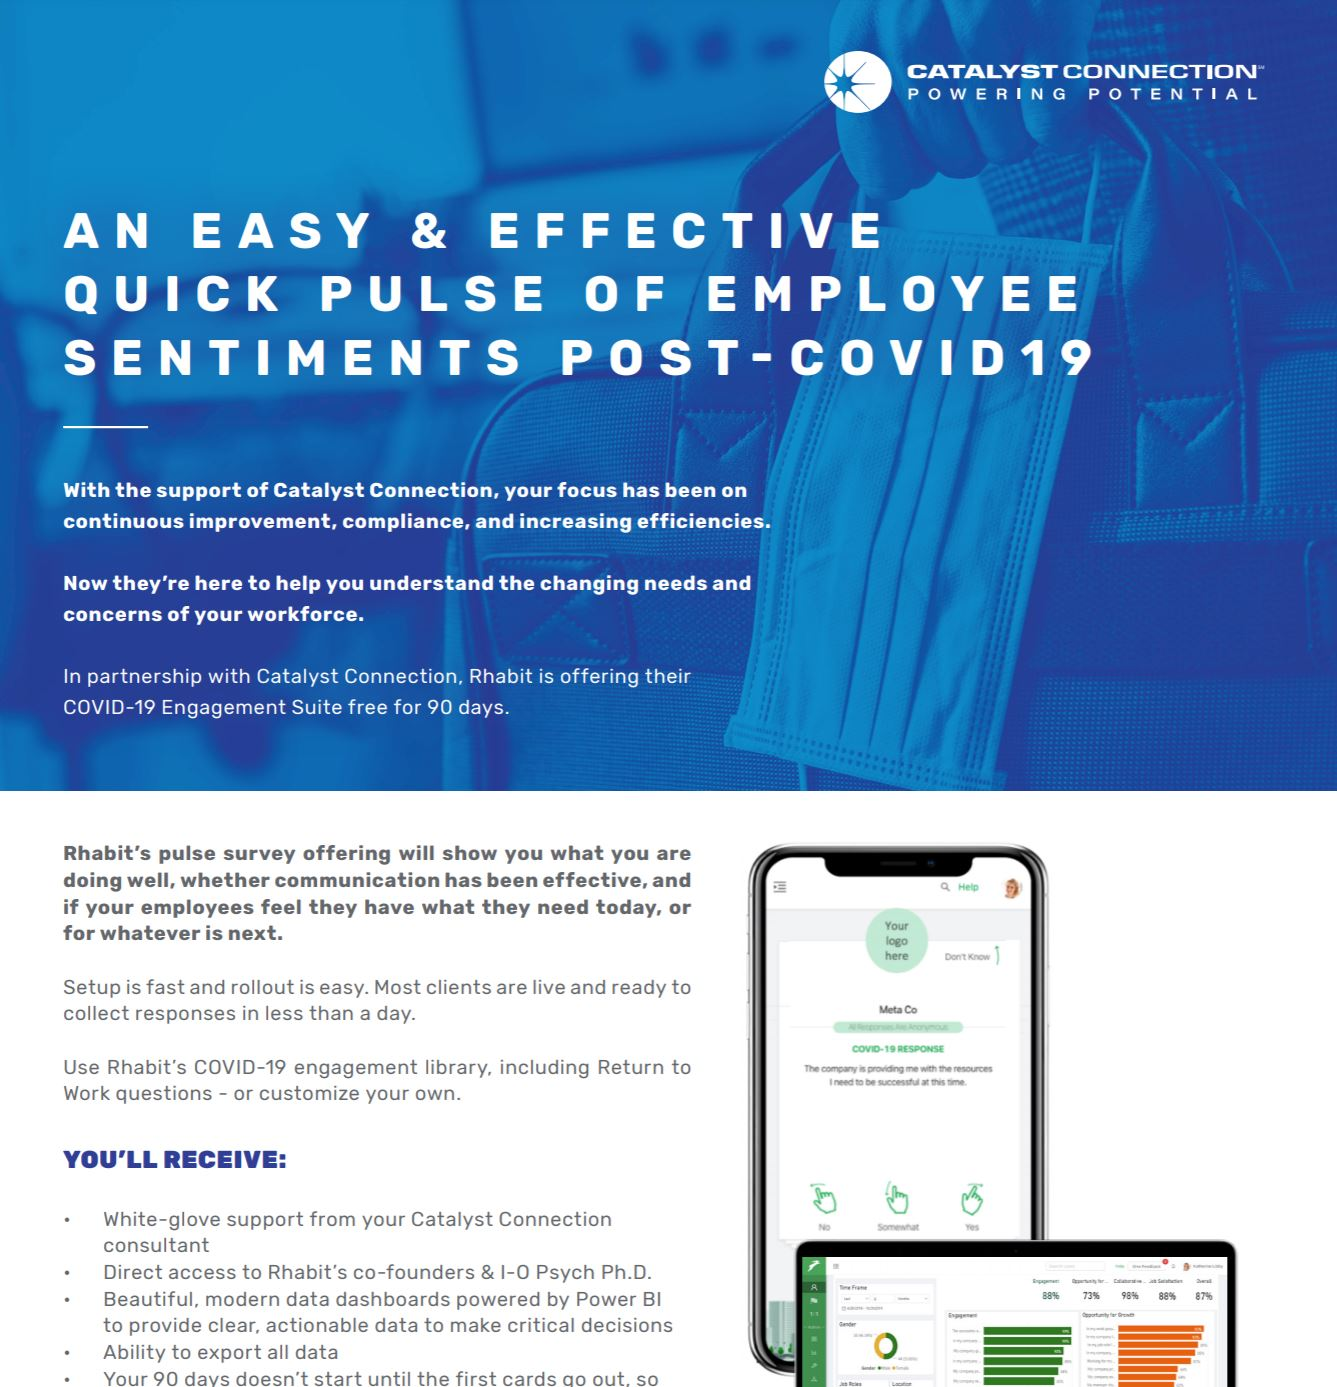 Take the Pulse of Your Workforce During COVID-19